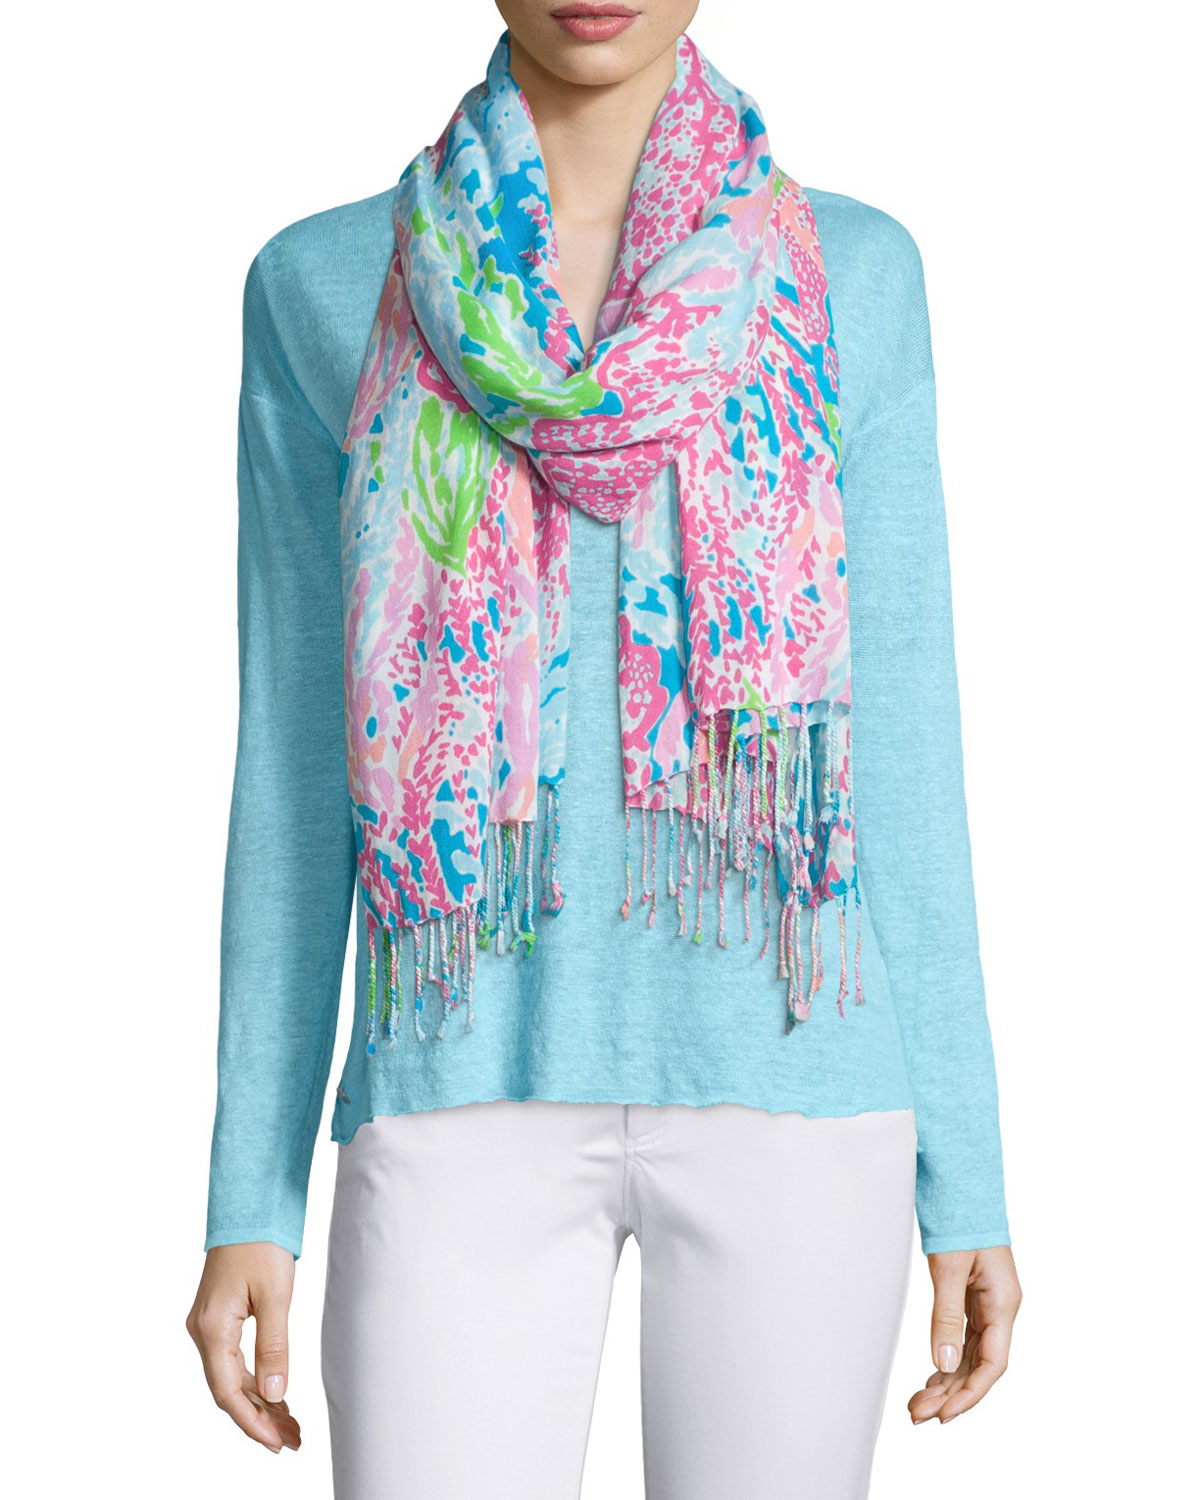 Lilly Printed Scarf, Turquoise - Lilly Pulitzer